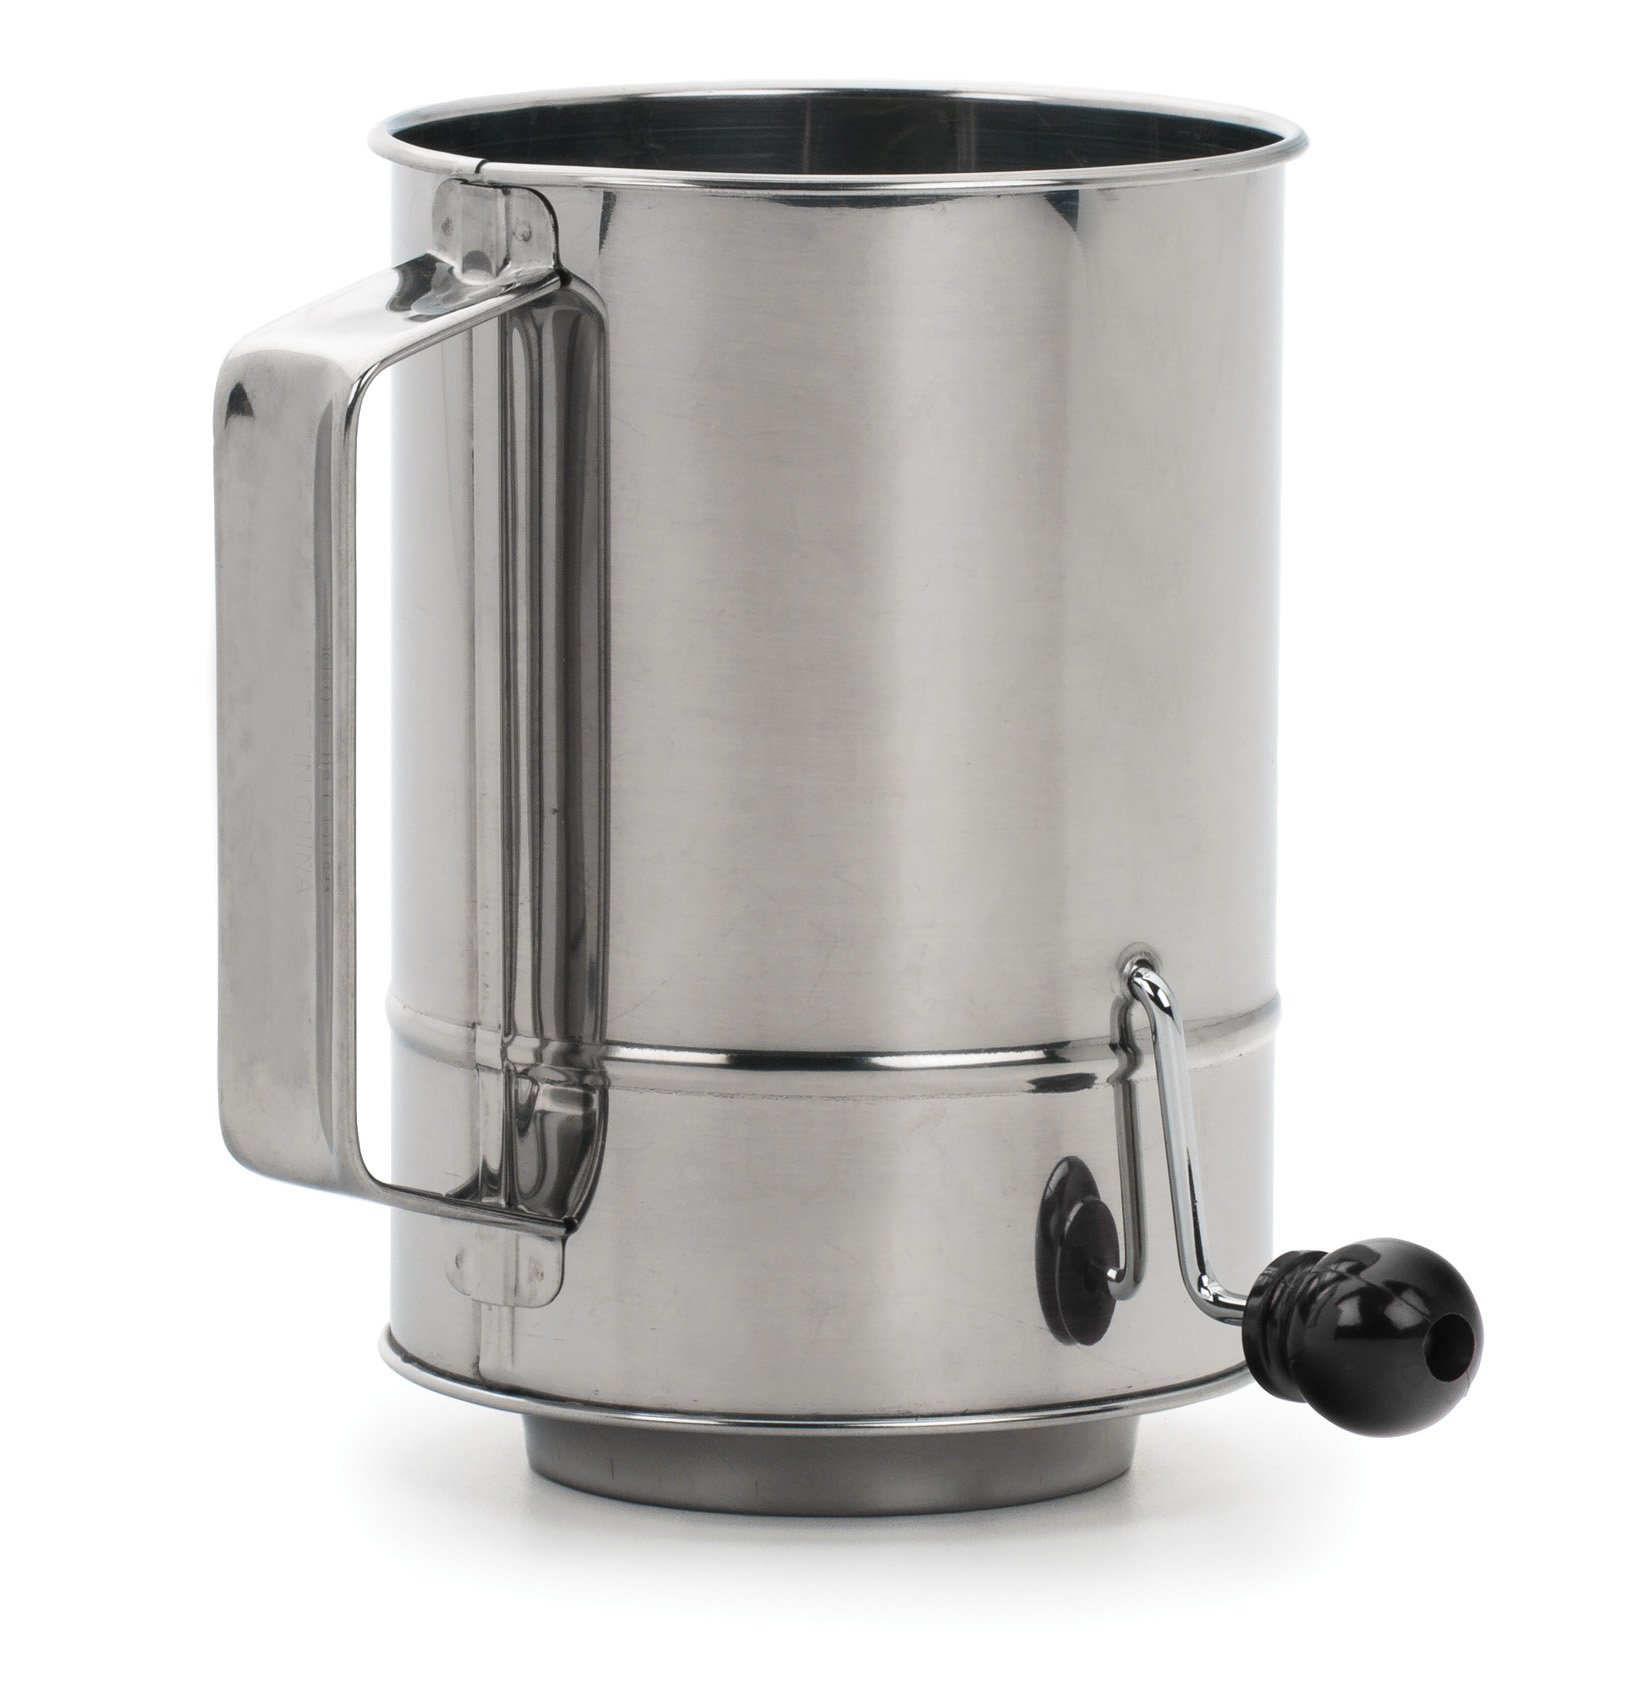 RSVP International Endurance Stainless Steel 5-Cup Crank Style Flour Sifter (SIFT-5CR) by RSVP International